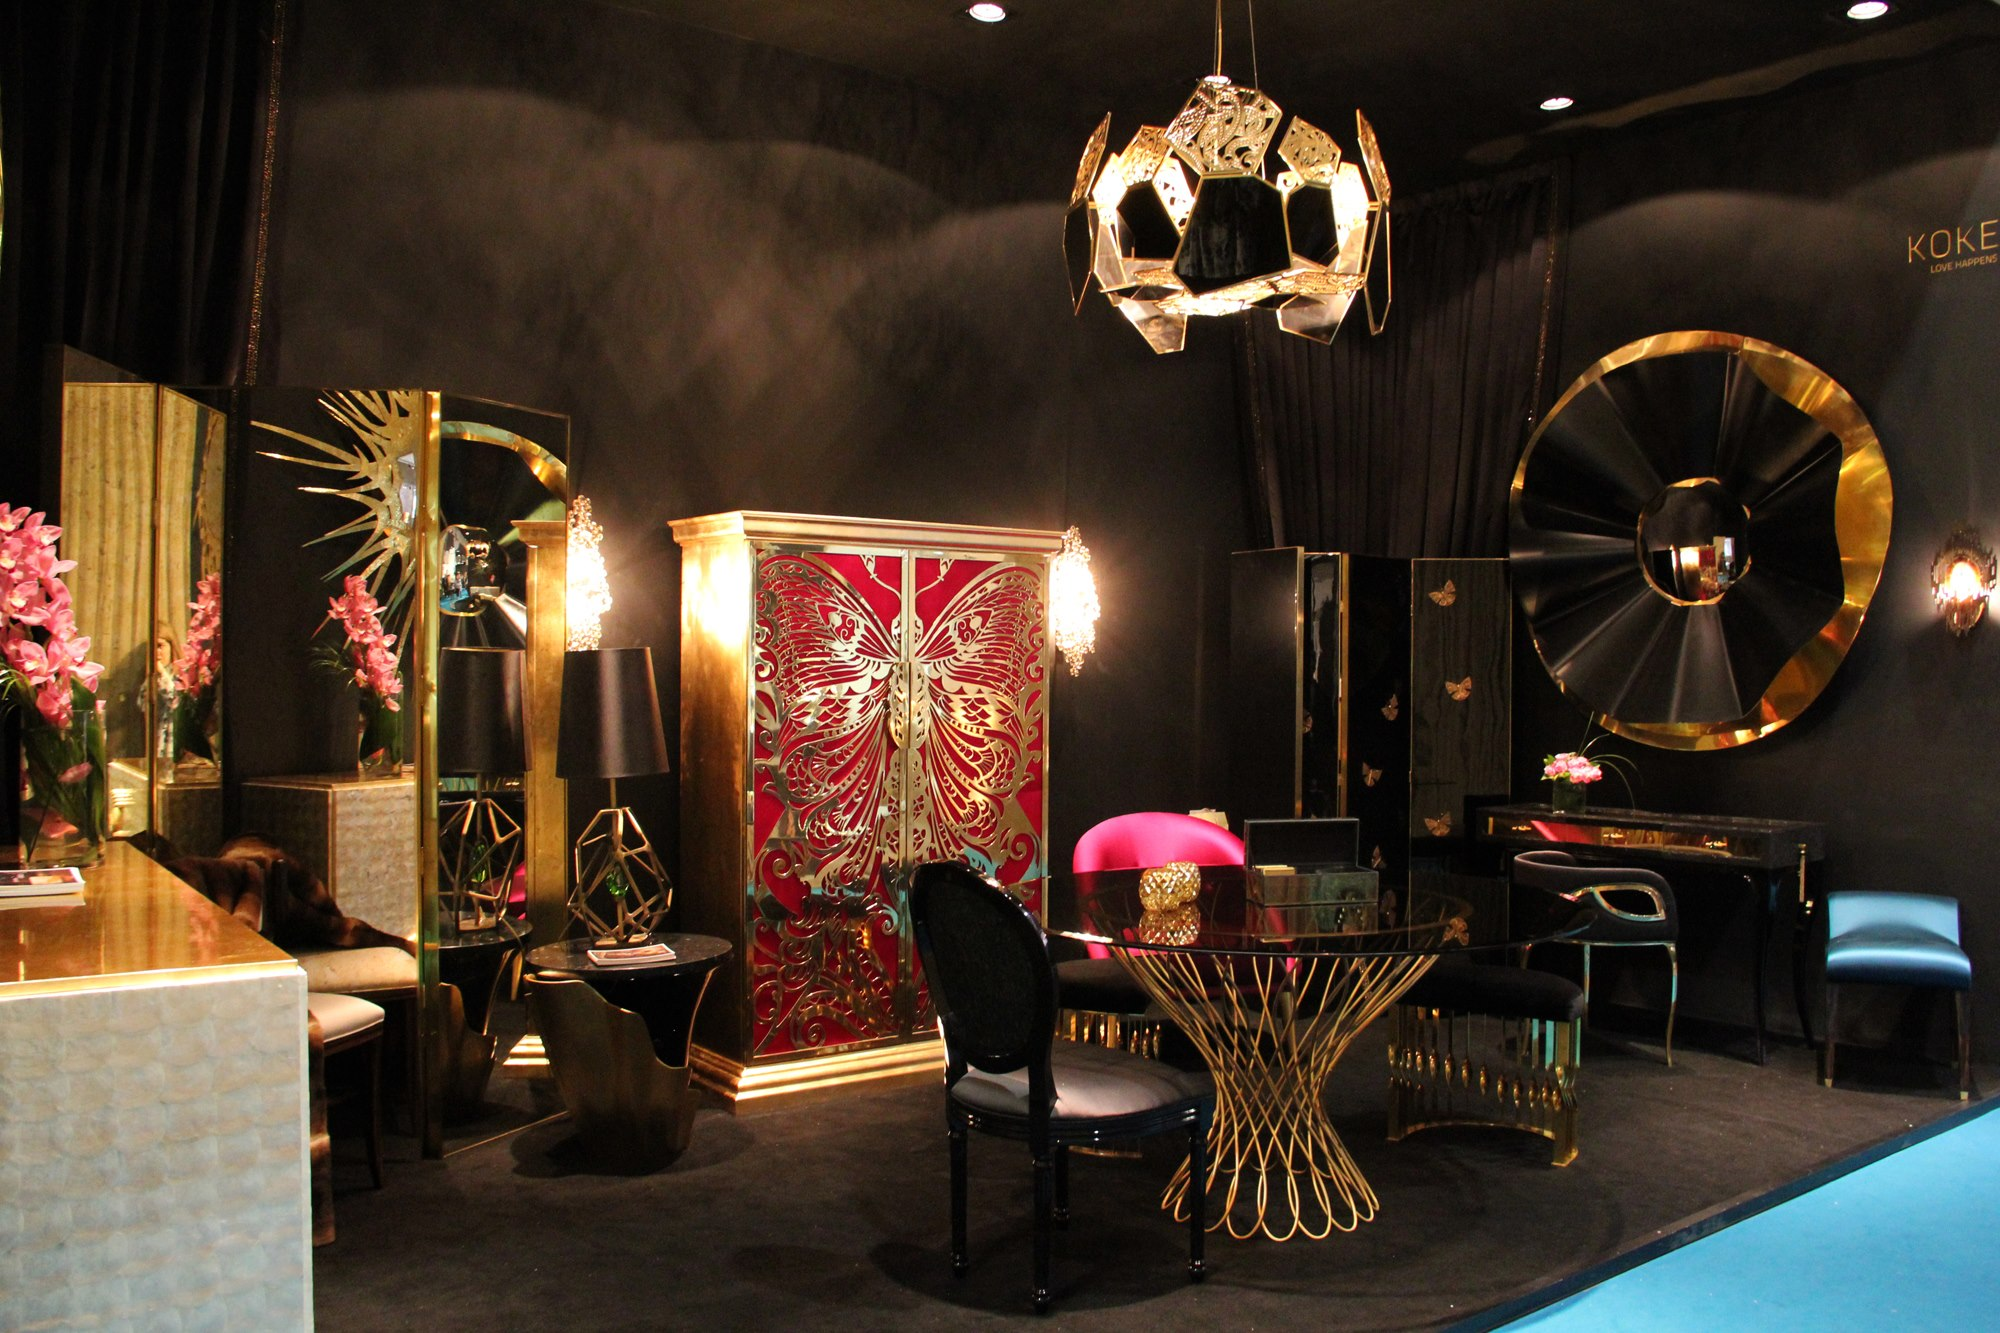 maison et objet paris best exhibitors from sc nes d 39 interi ur. Black Bedroom Furniture Sets. Home Design Ideas